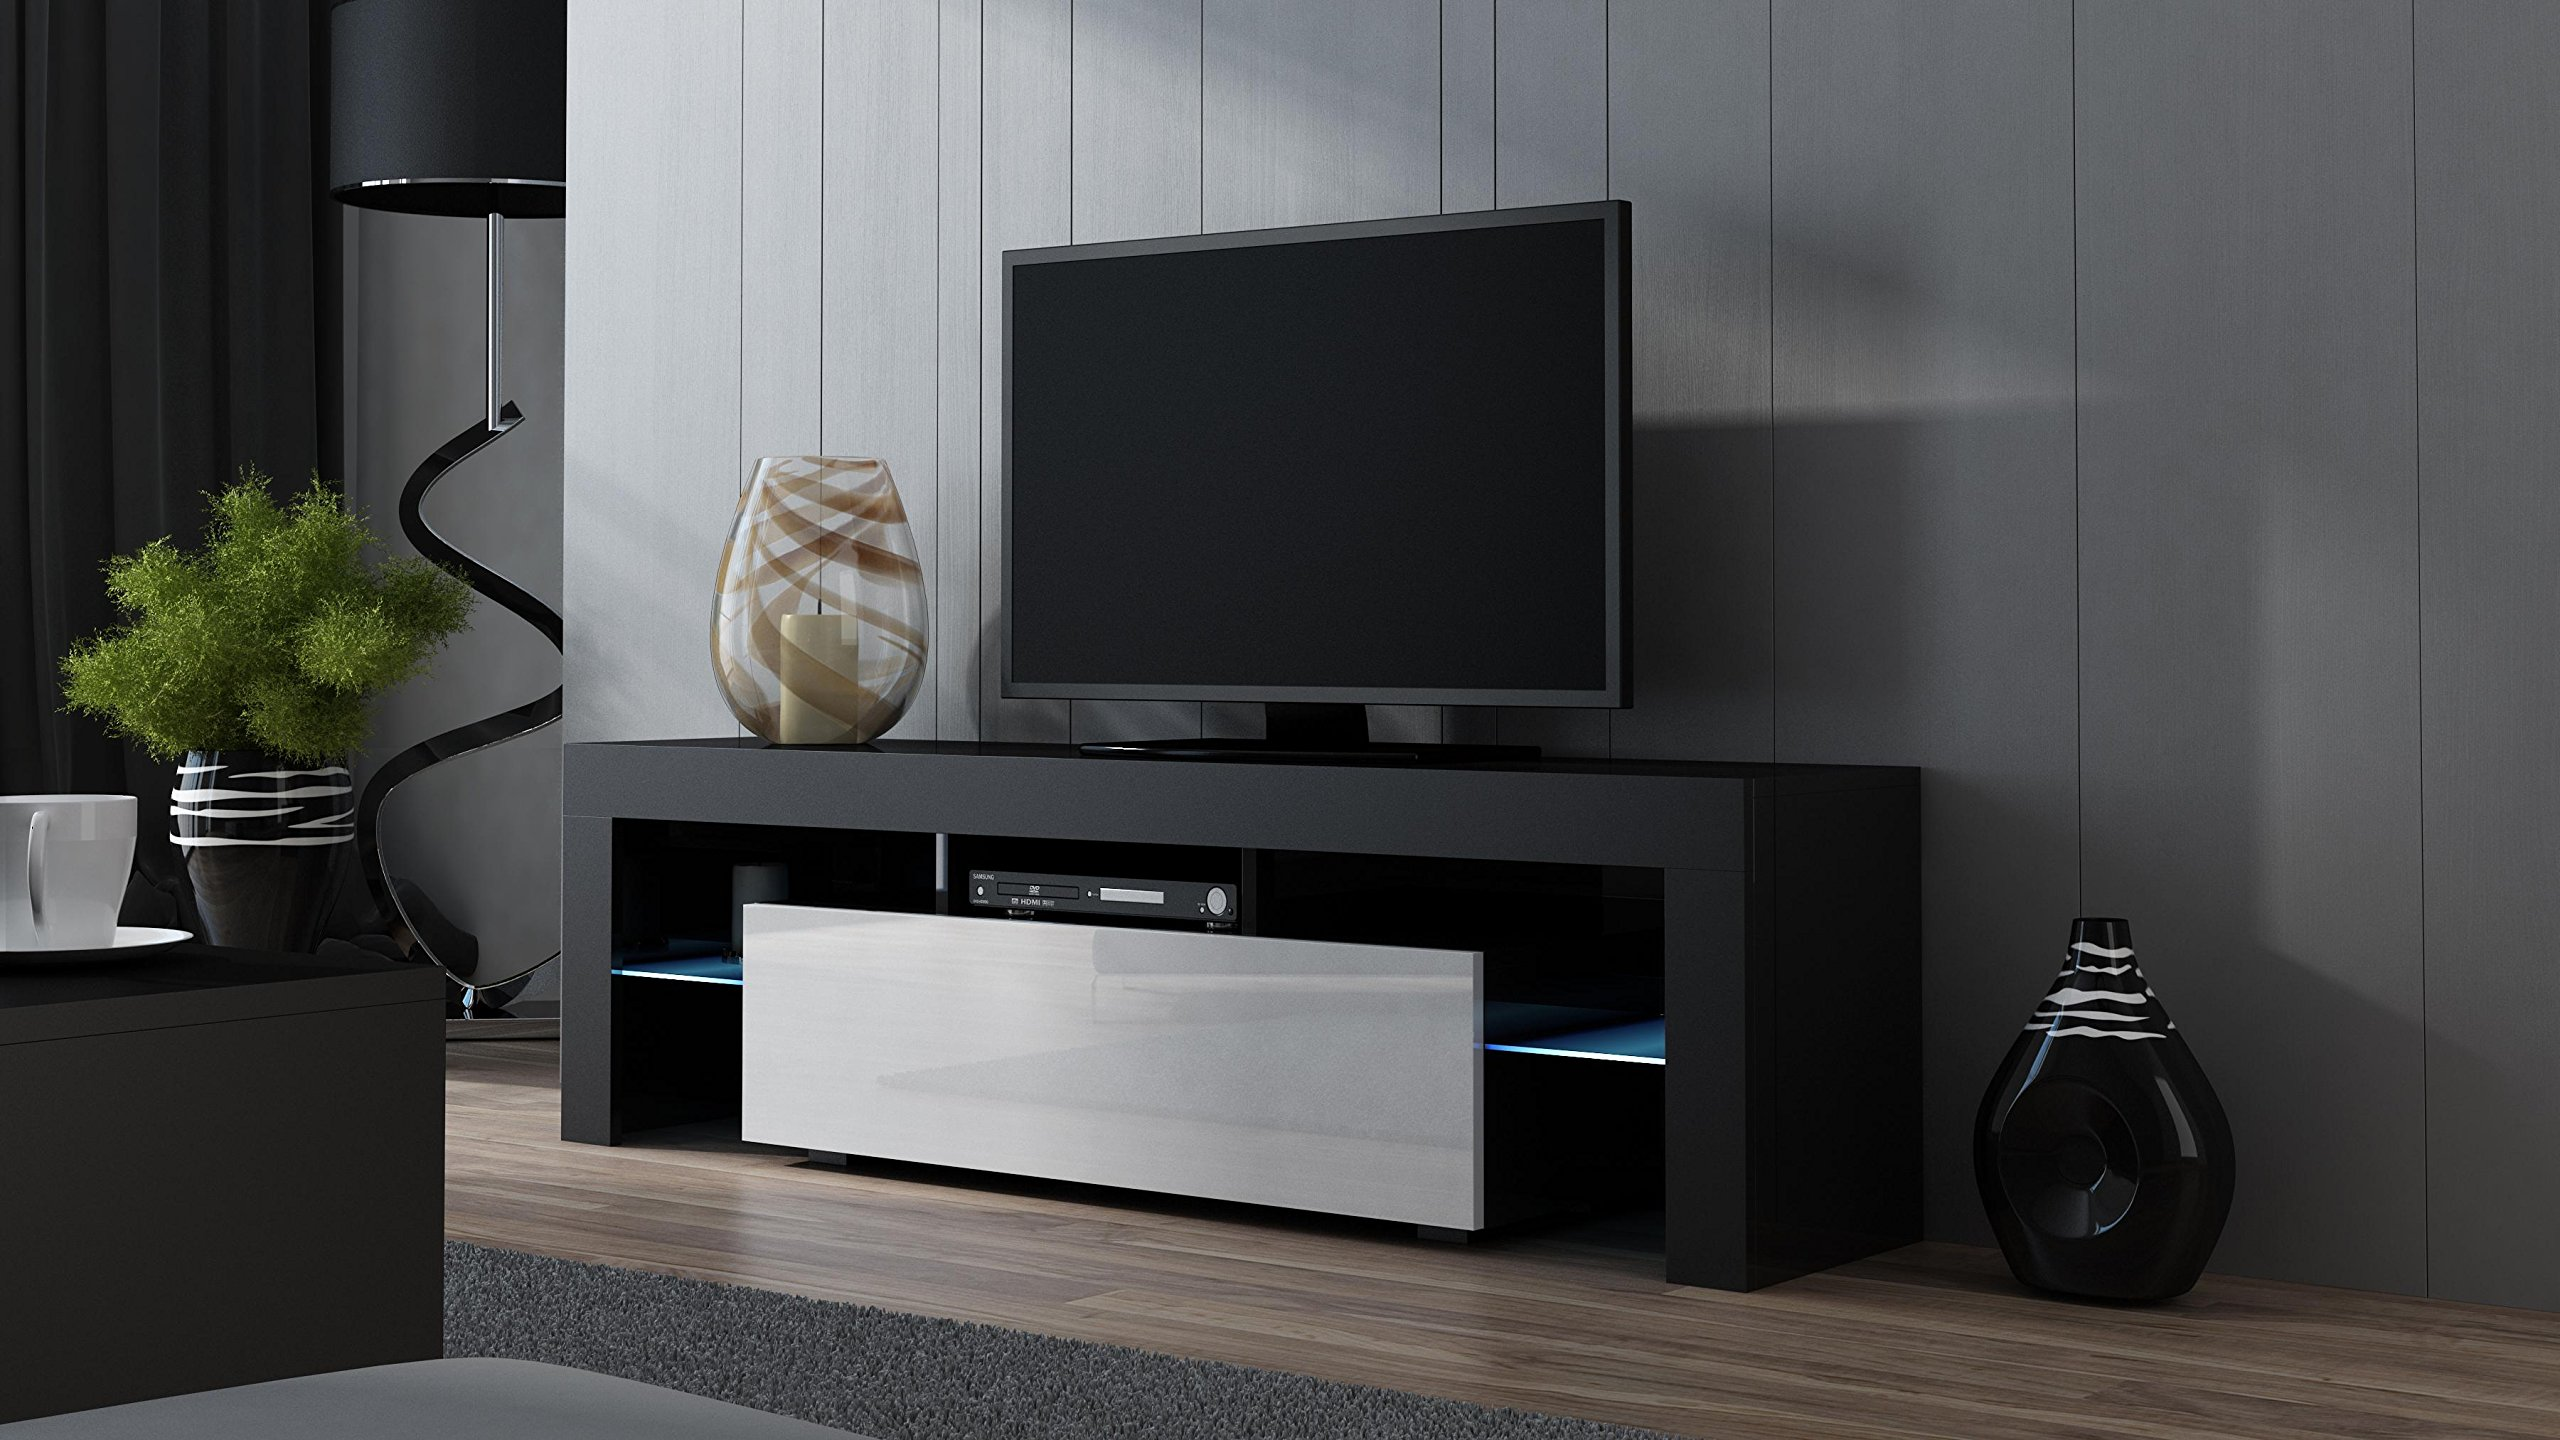 TV Stand MILANO 160 Black- TV Cabinet with LEDs - Living Room Furniture - TV Console for up to 70'' TV screens - TV stand with LED lights (Black & White)